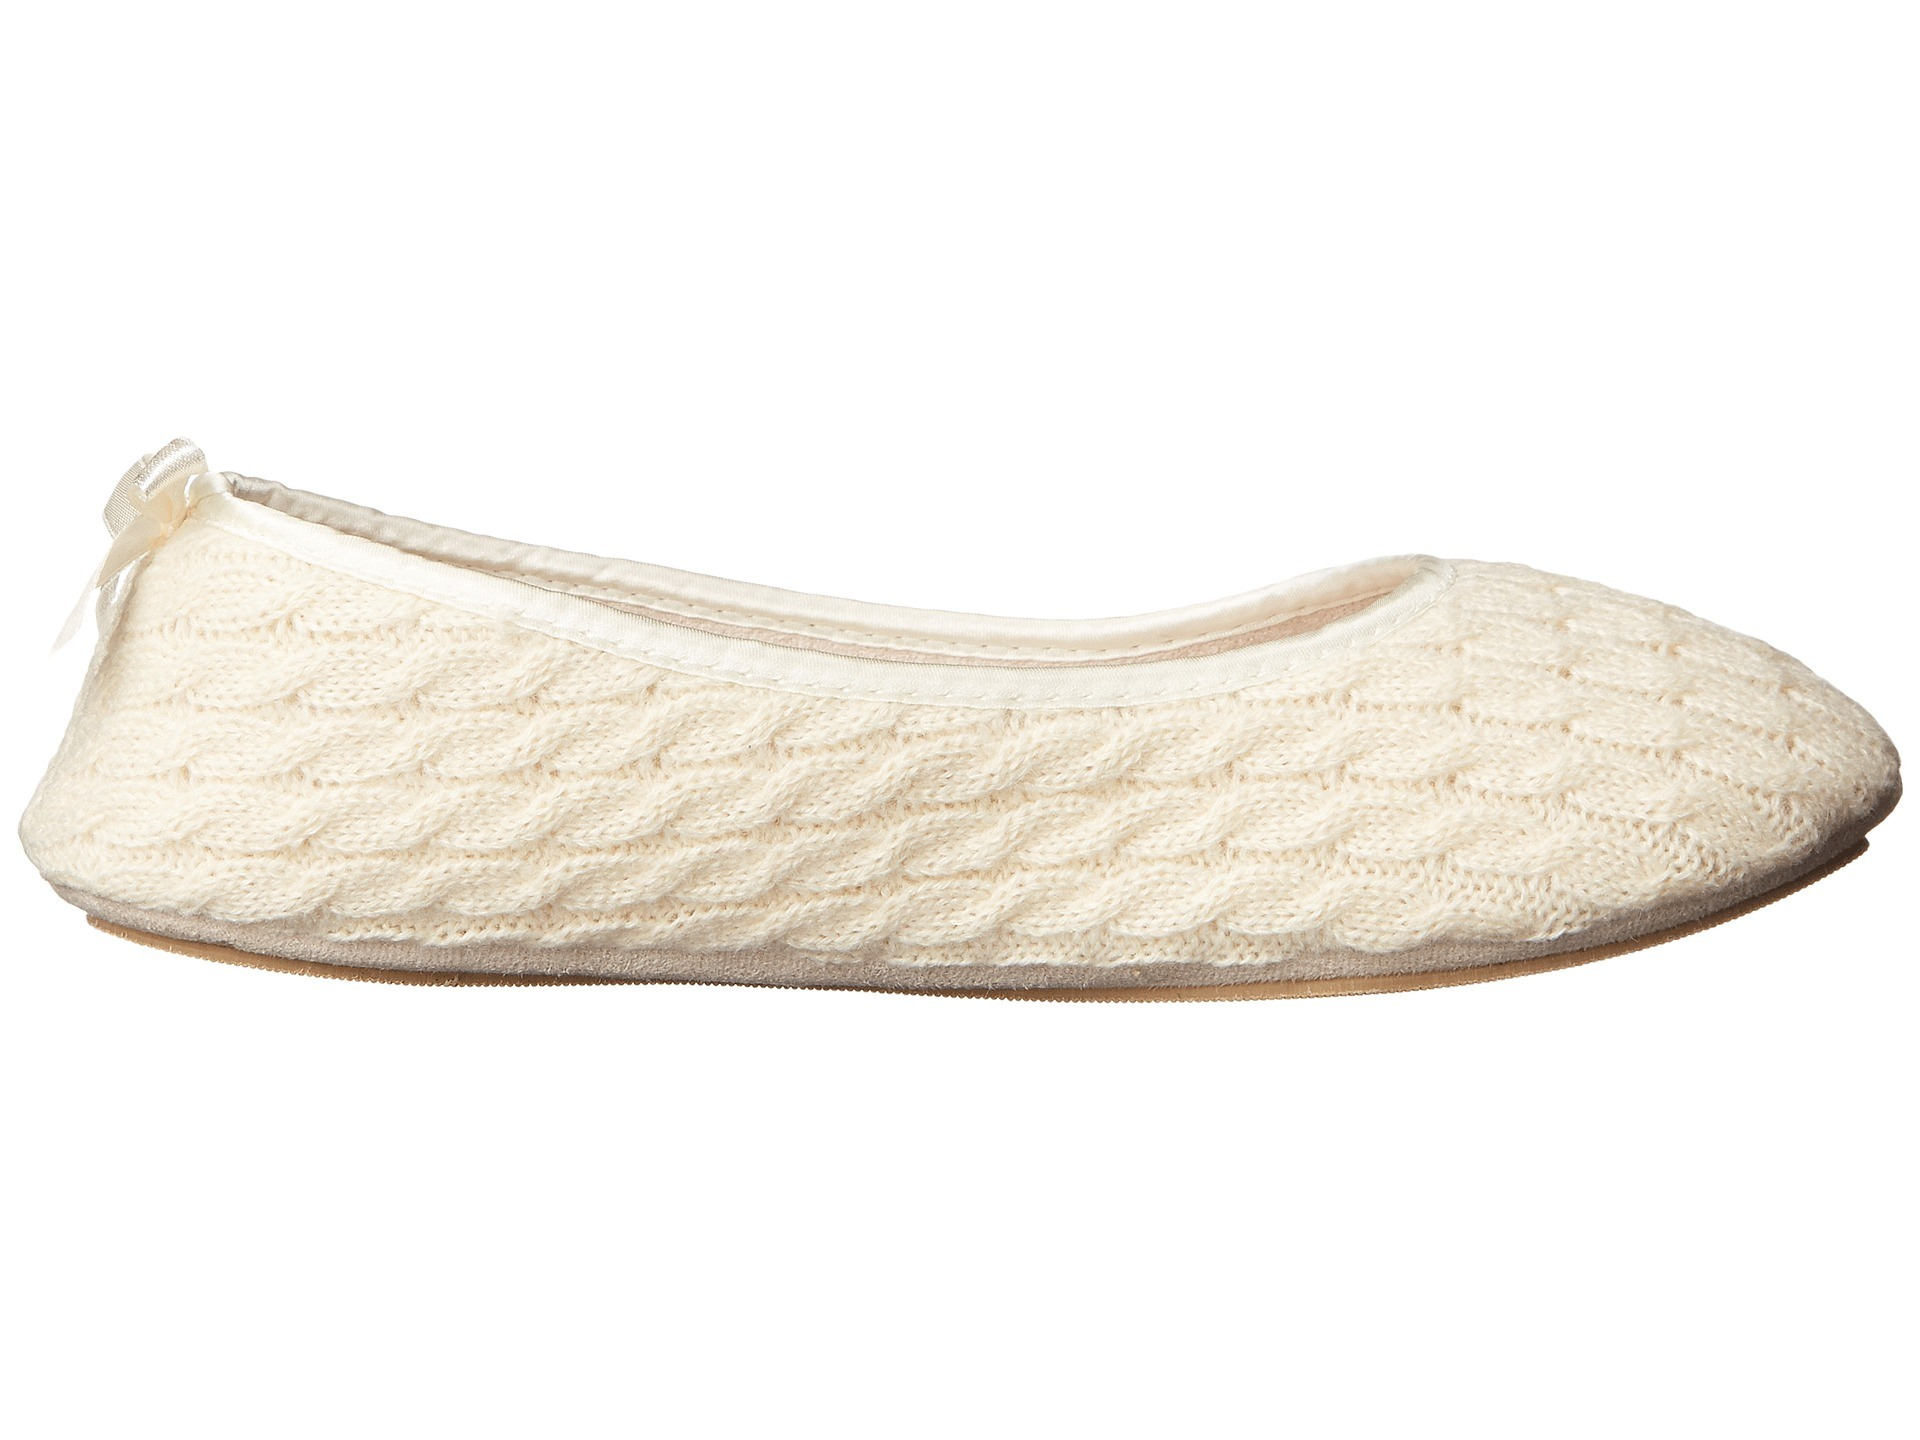 Lady′s Home Slipper Cable Knit Cozy Slipper